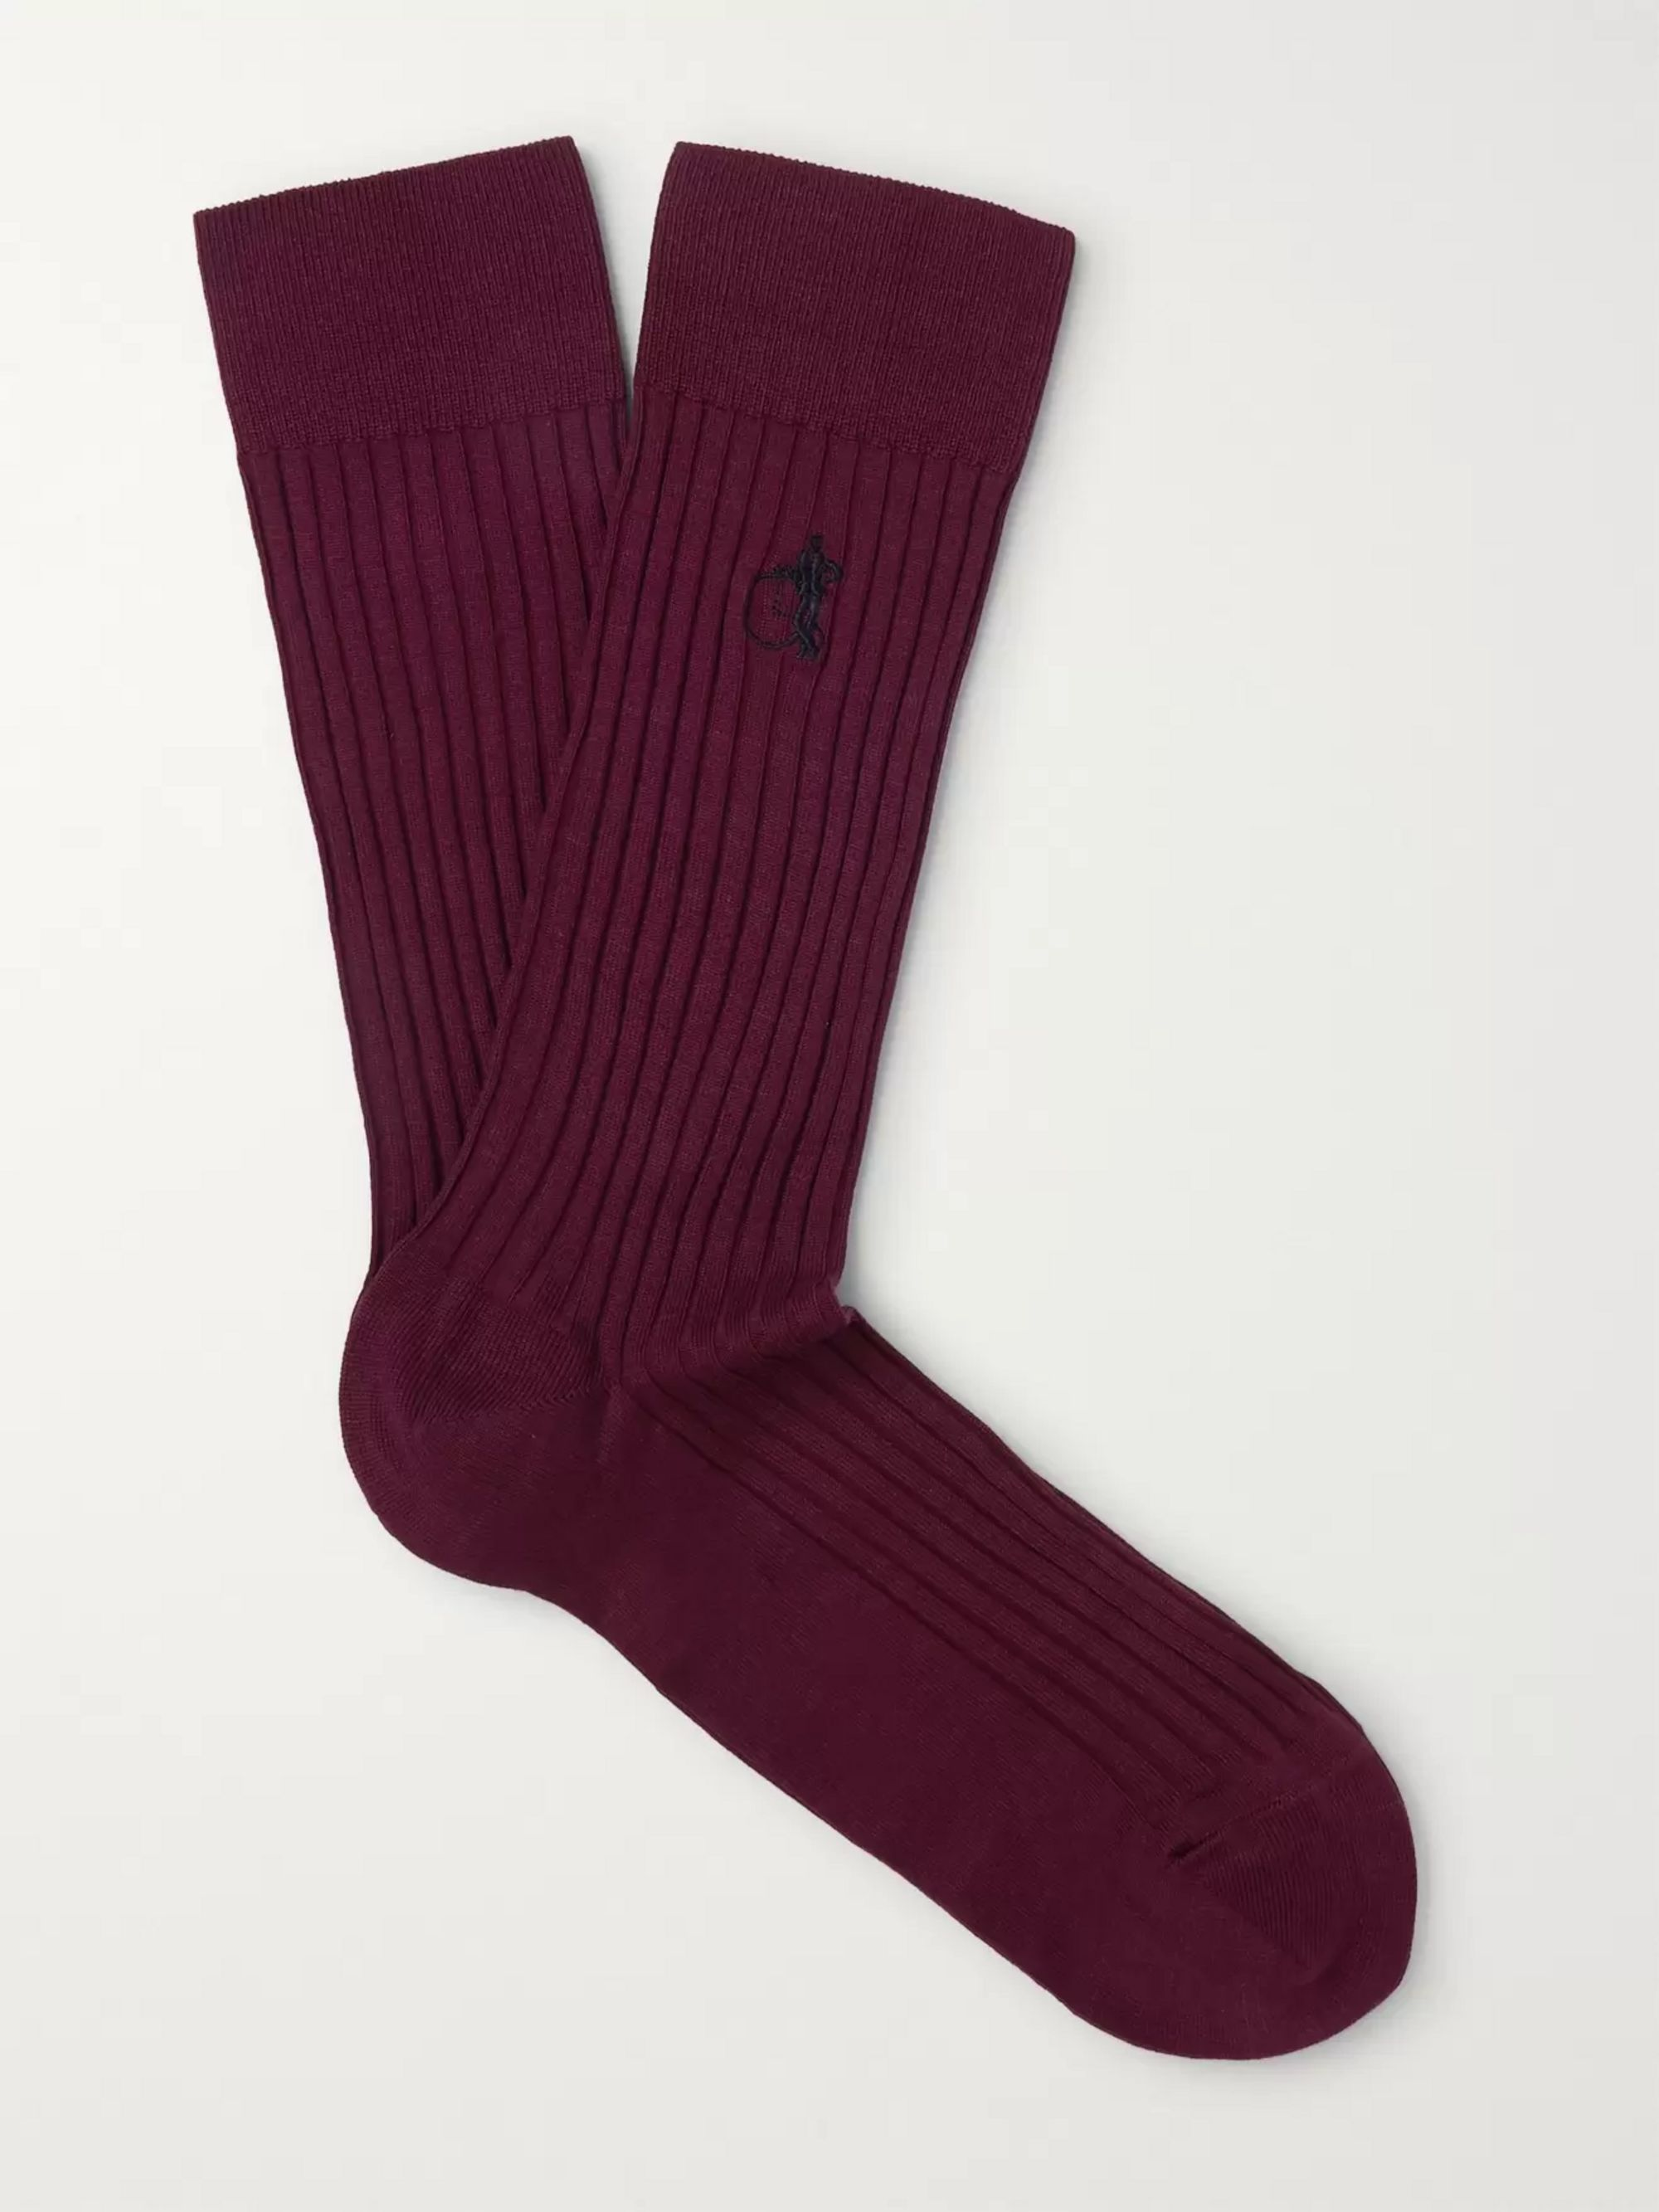 London Sock Co. Six-Pack Cotton-Blend Socks